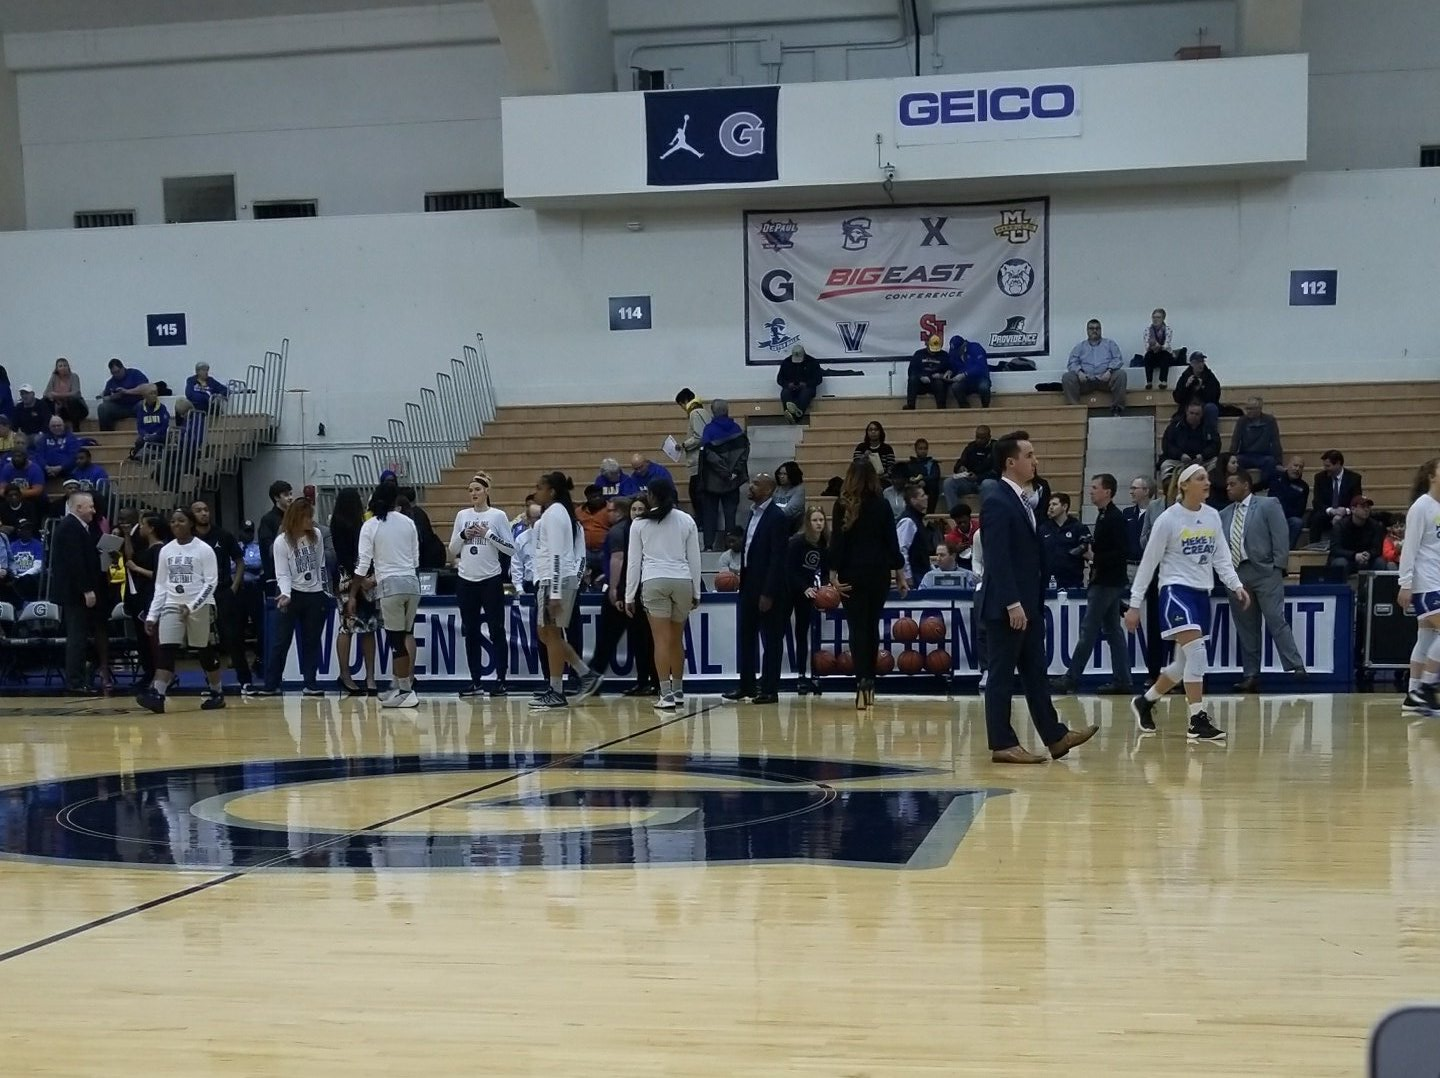 Women's team ousted by Georgetown in first round of WNIT